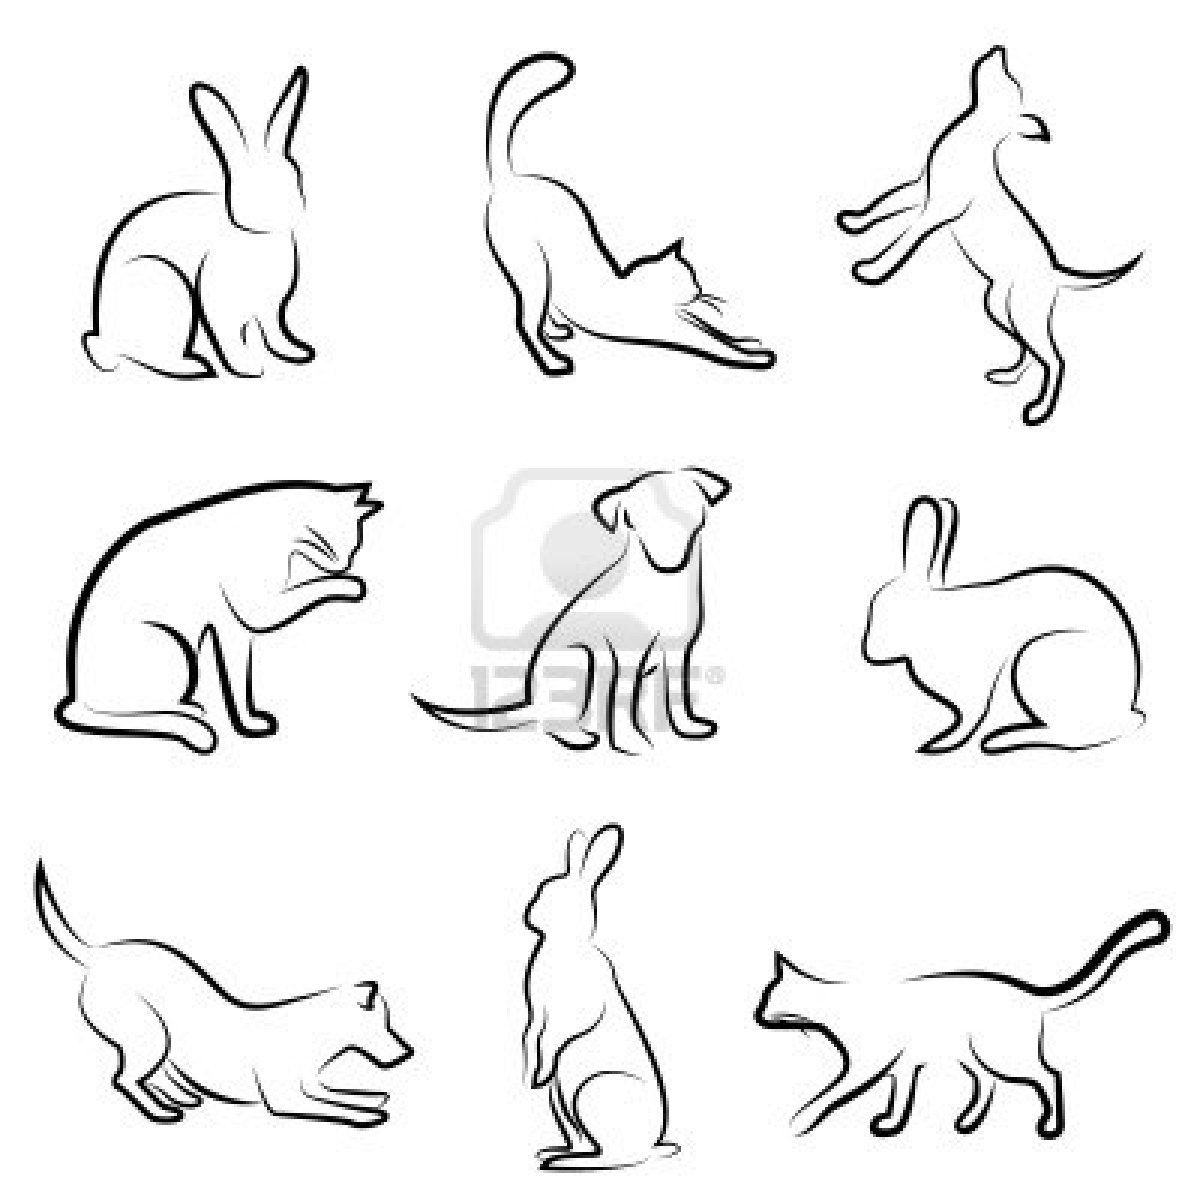 Good Studies In Line Pressure, As Well As Negative Space Bunnies, Cats,